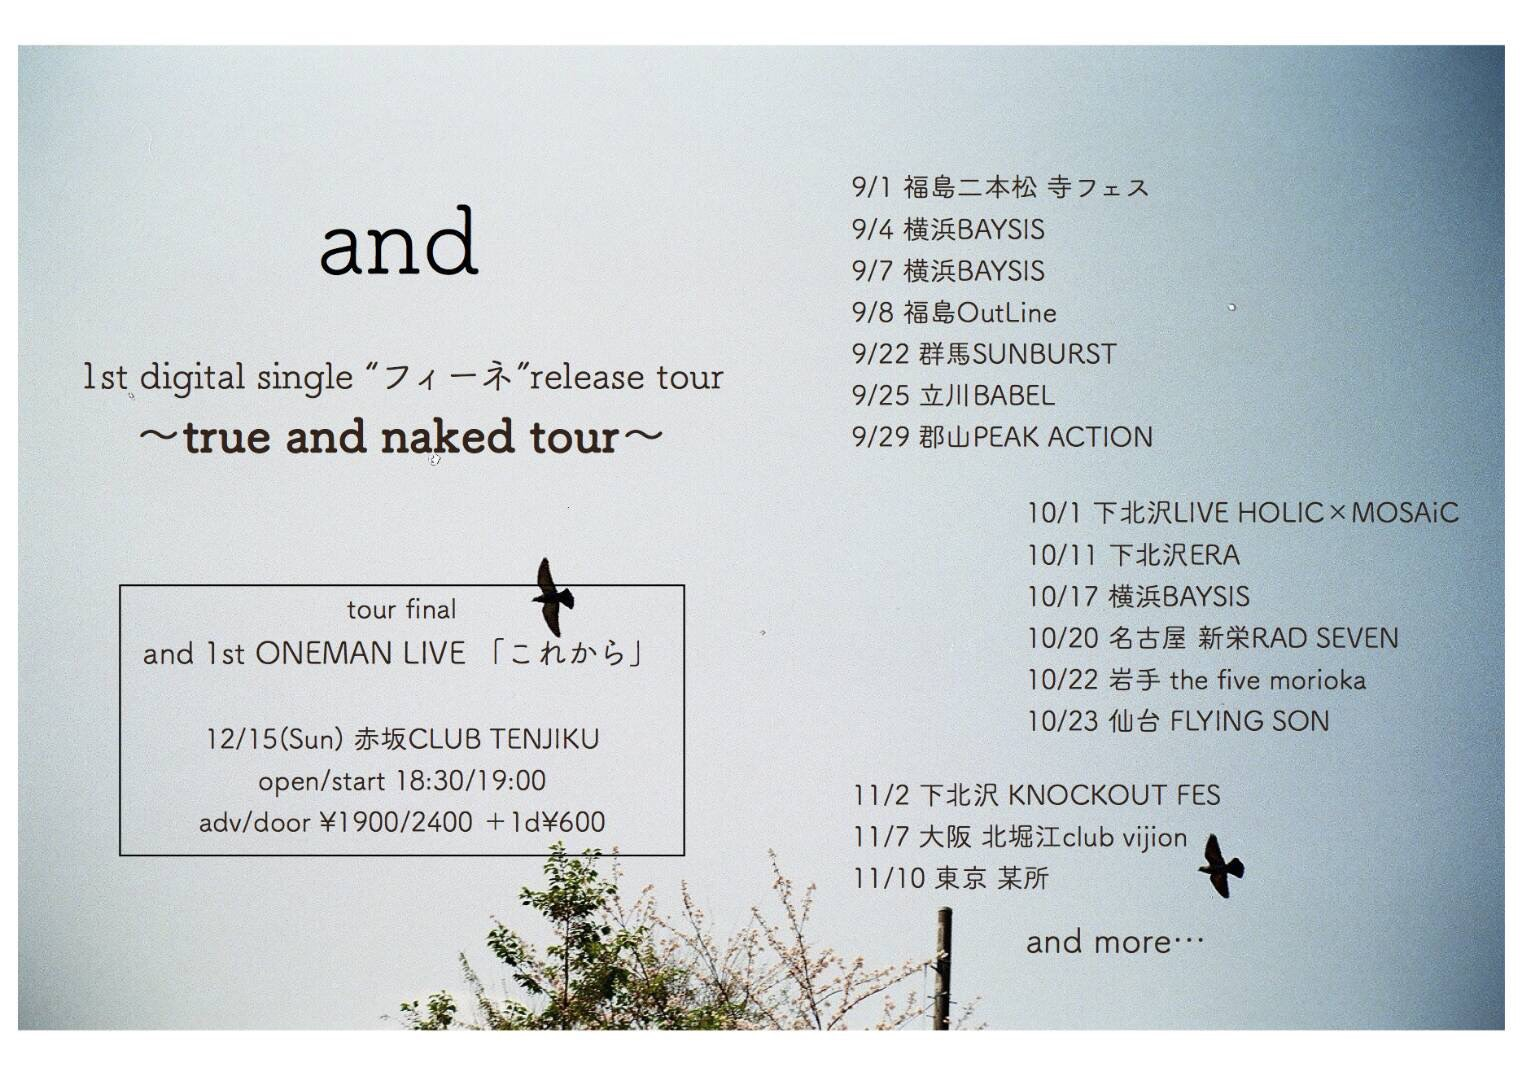 """「and 1st digital single """"フィーネ"""" release tour 〜true and naked tour〜」"""